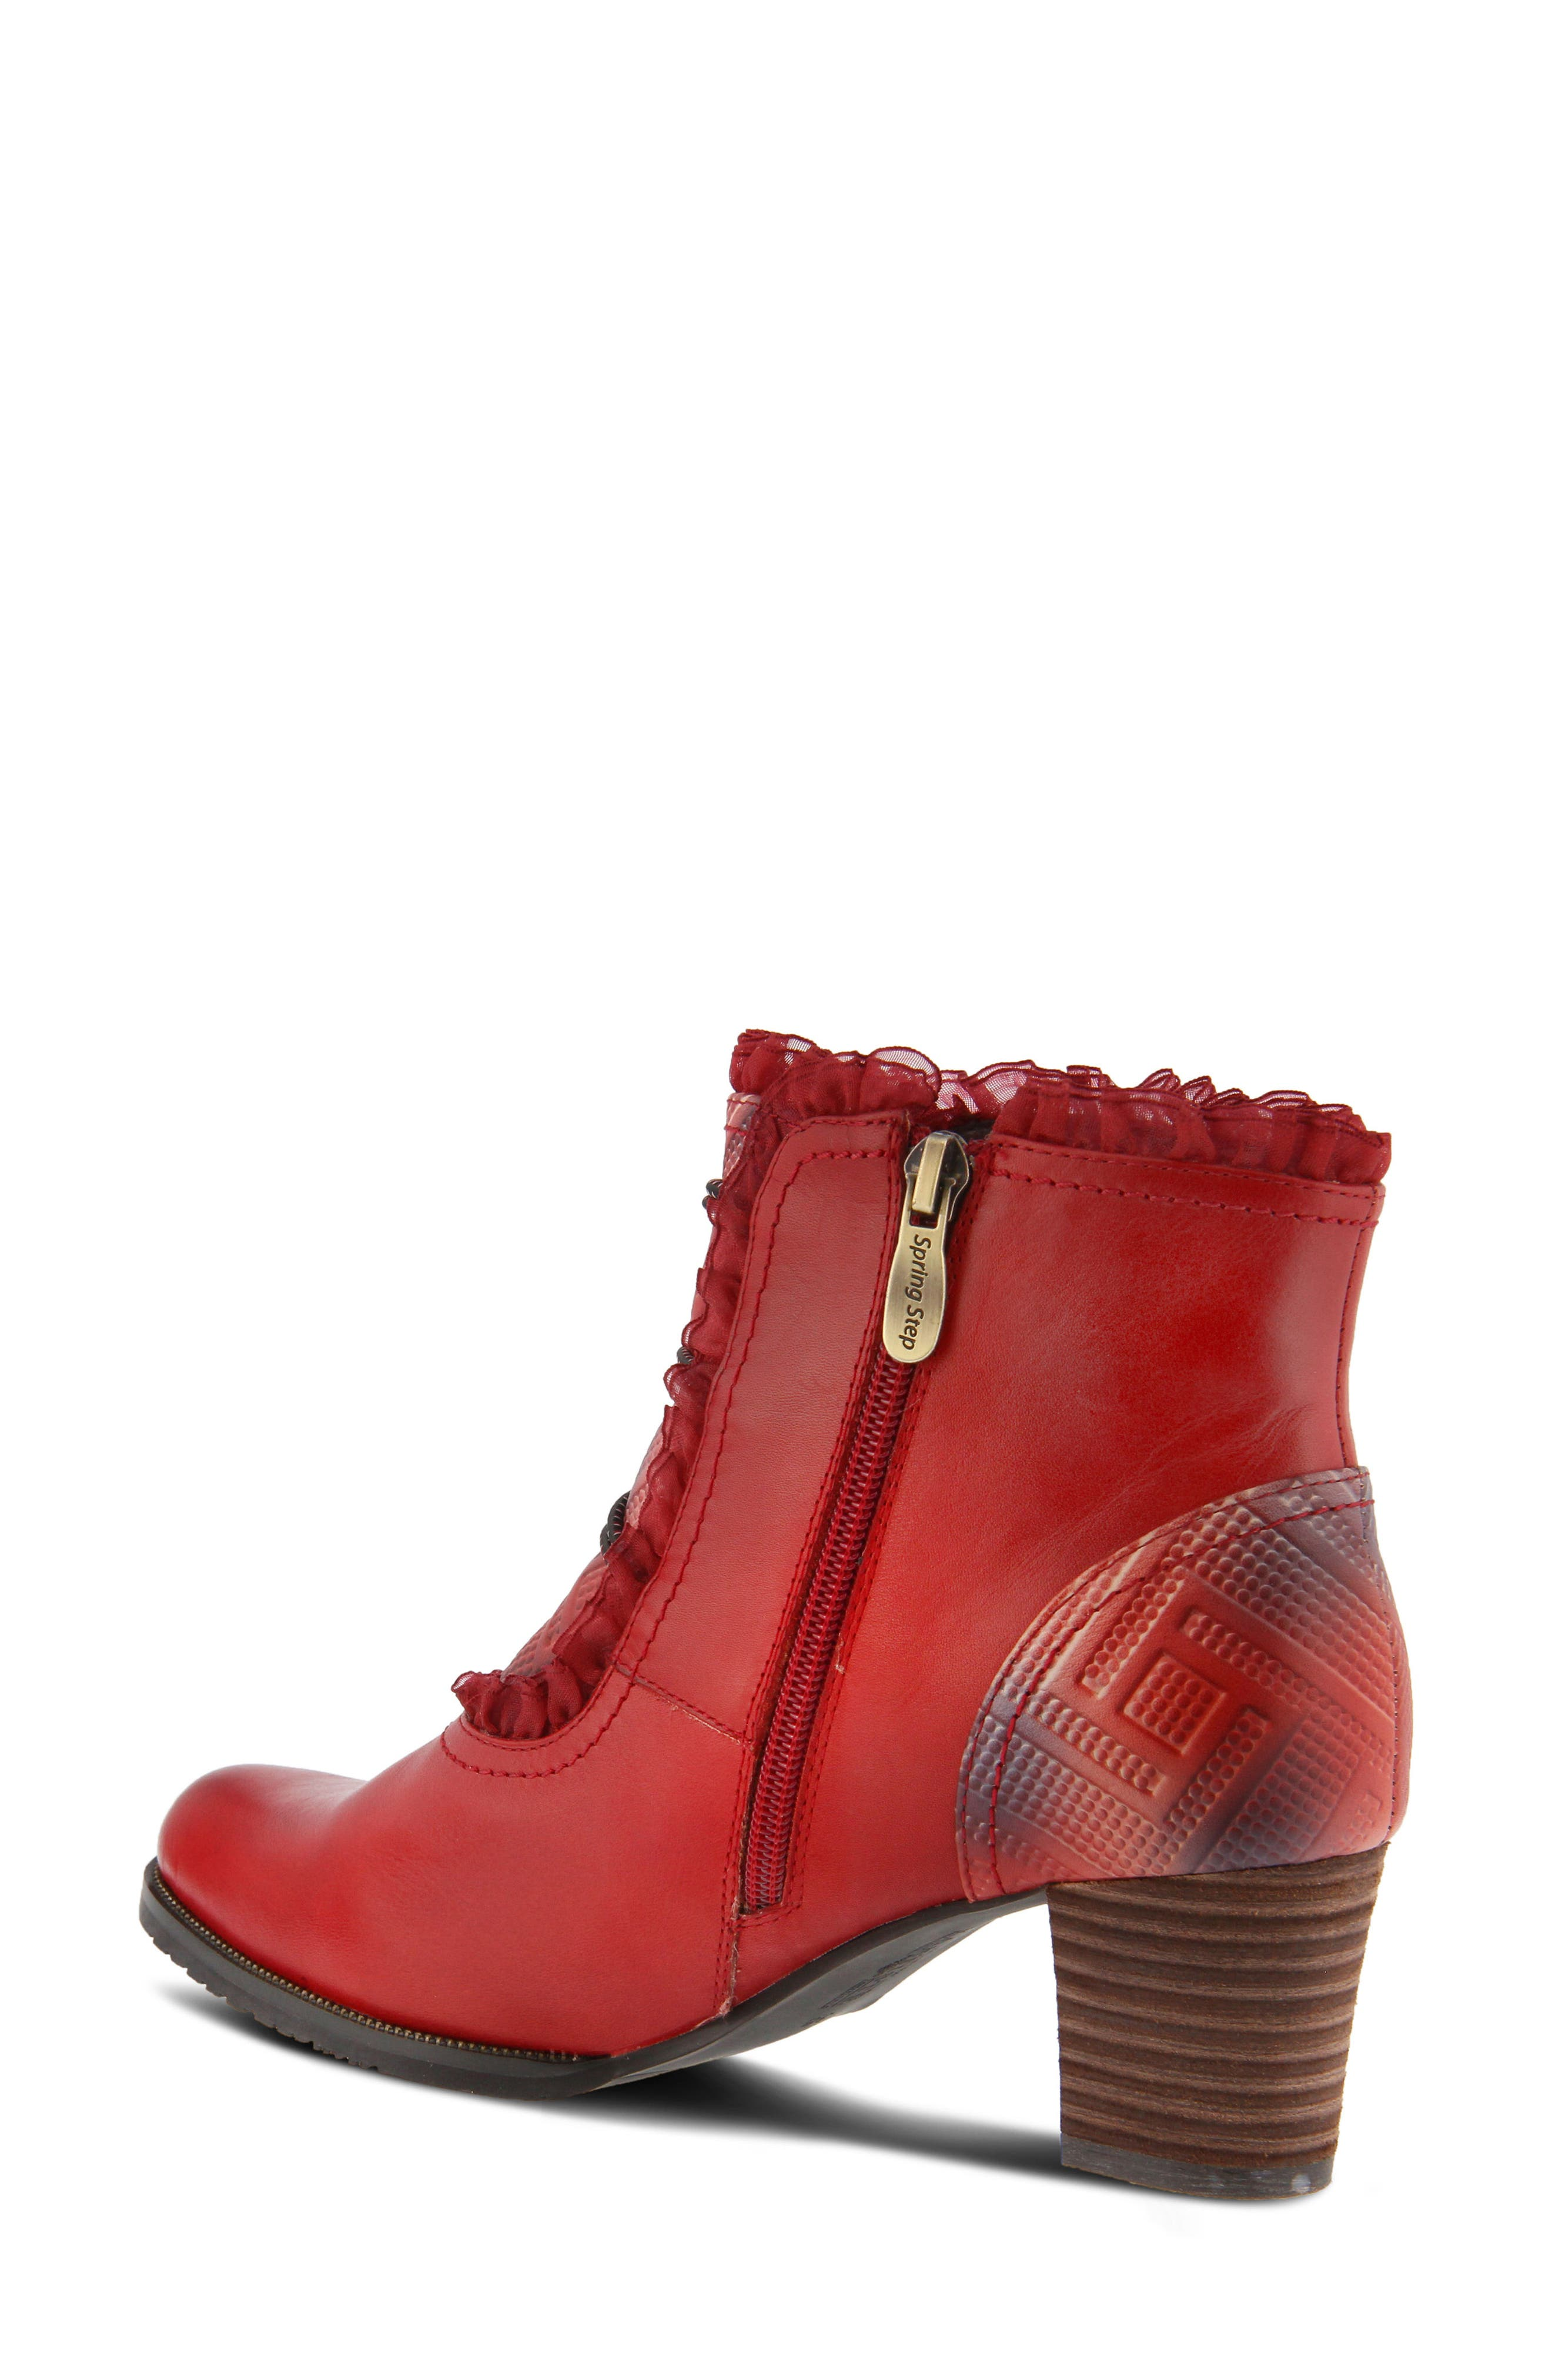 L'Artiste Conchita Boot,                             Alternate thumbnail 2, color,                             Red Leather